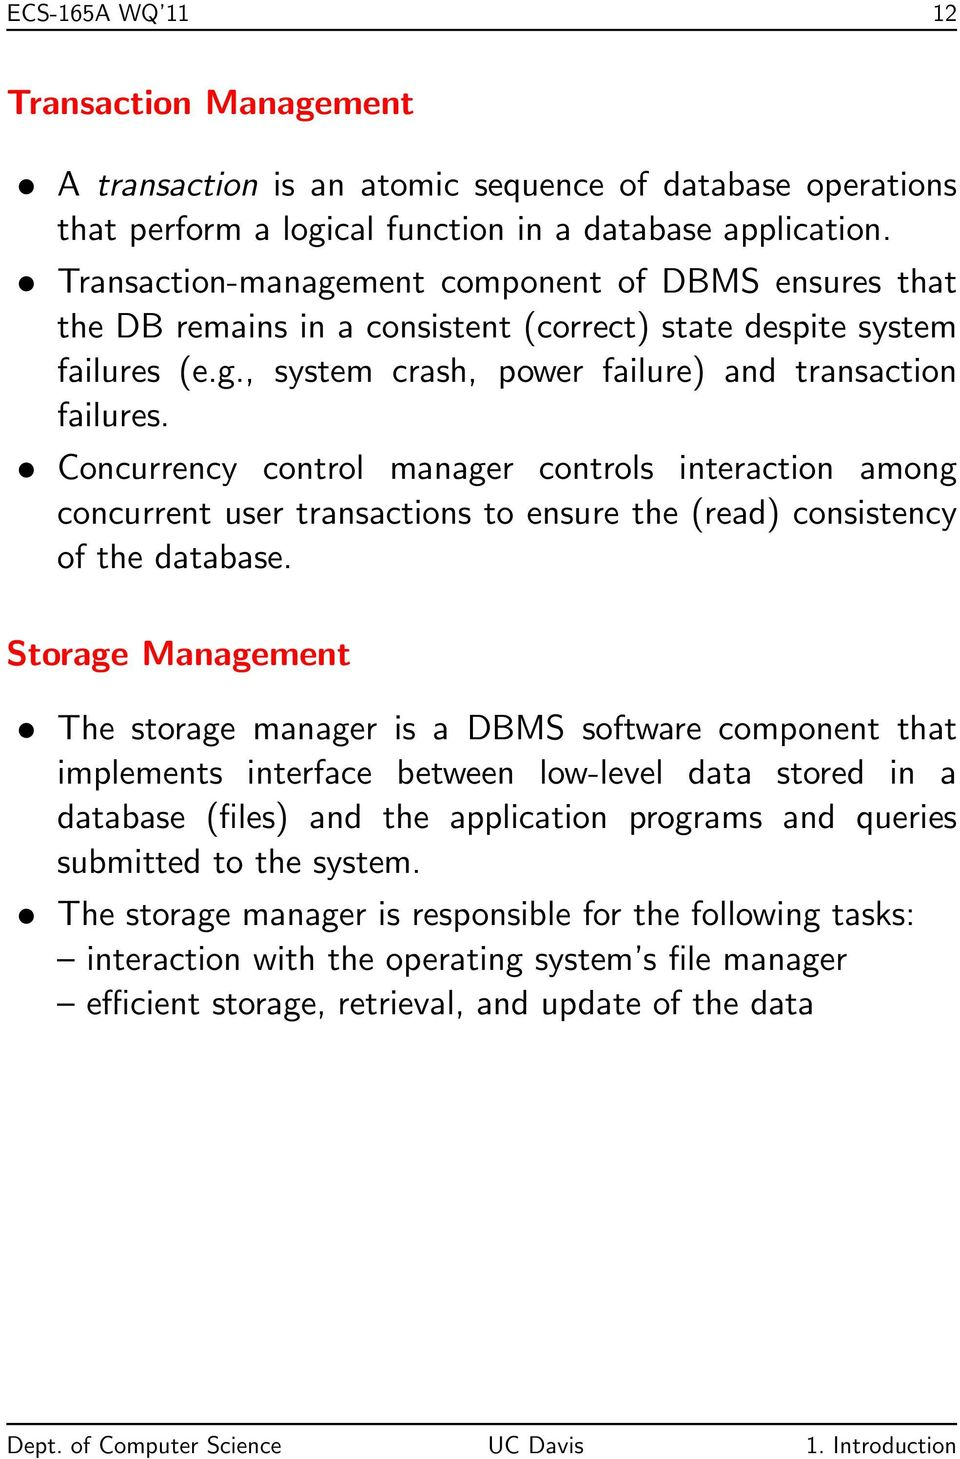 Concurrency control manager controls interaction among concurrent user transactions to ensure the (read) consistency of the database.